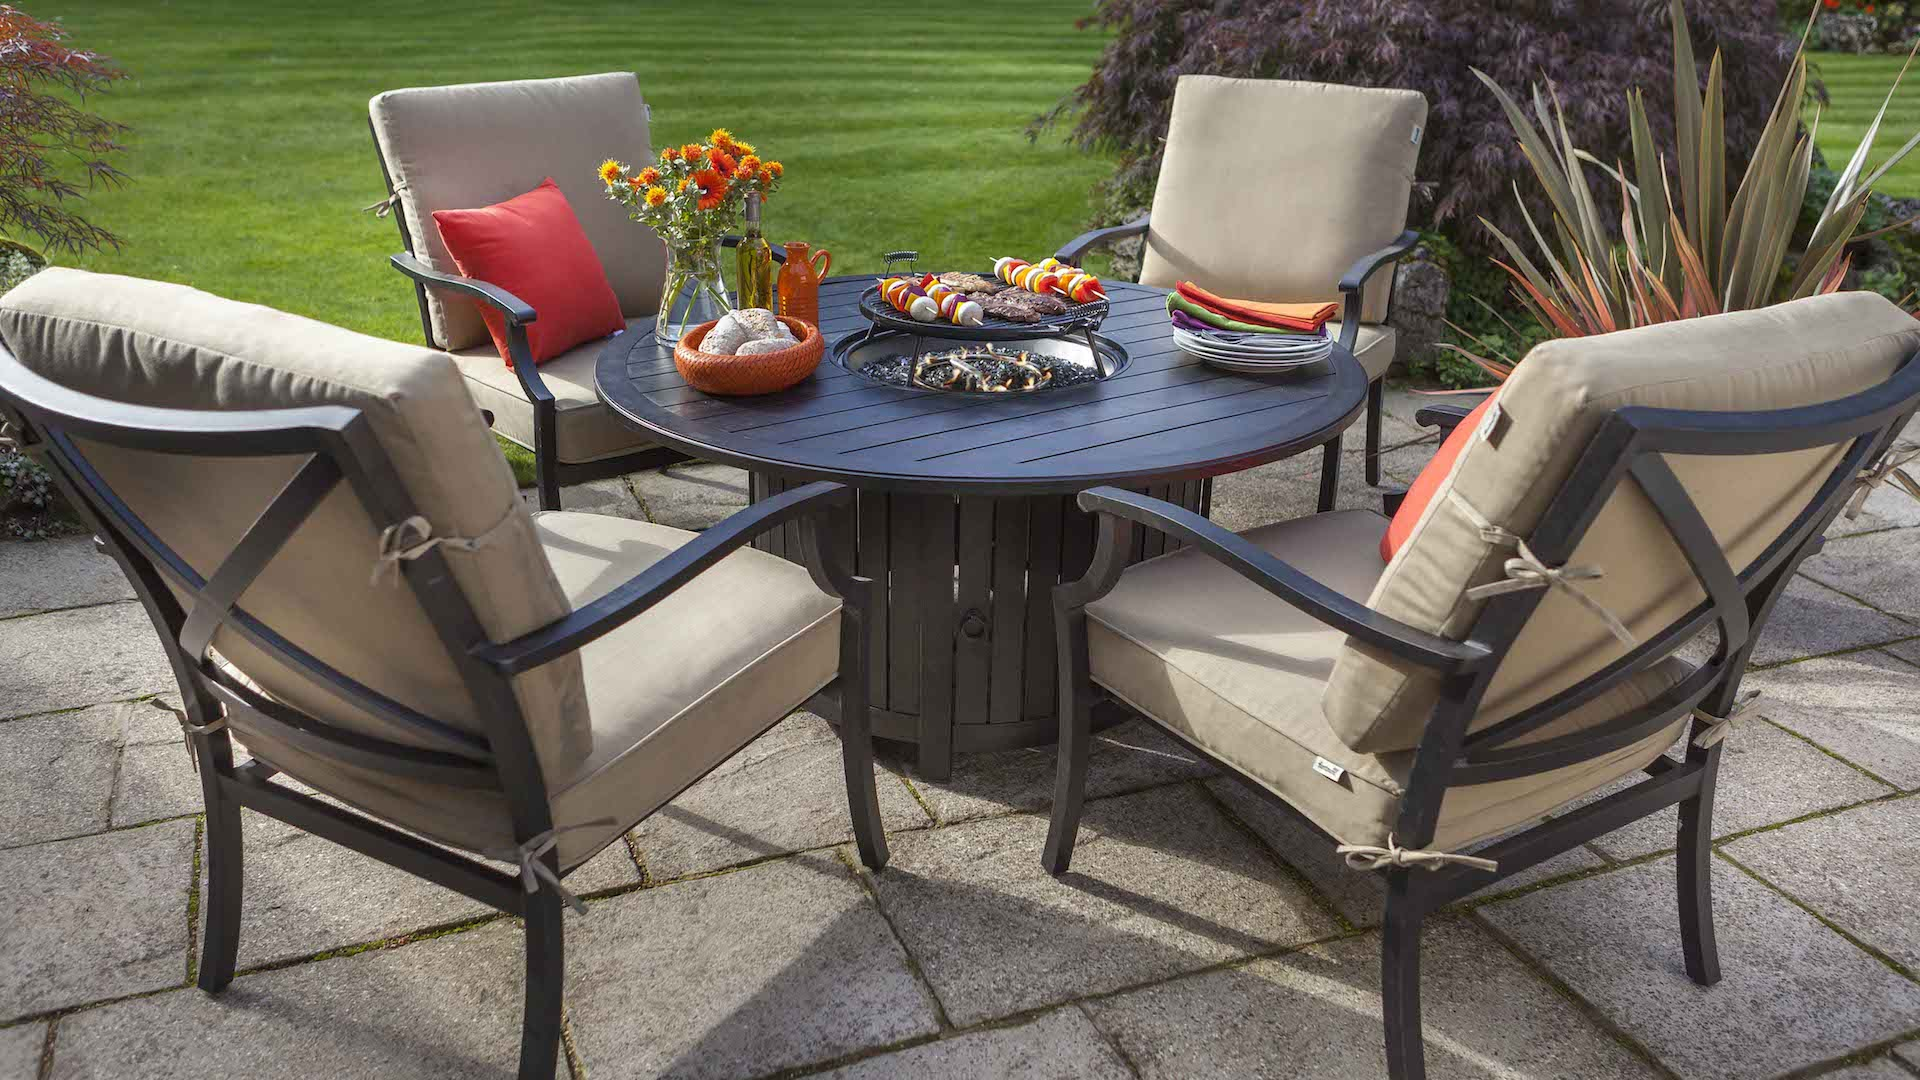 https://www.firstfurniture.co.uk/pub/media/catalog/product/e/m/emberglow_fire_pit_set_2.jpg